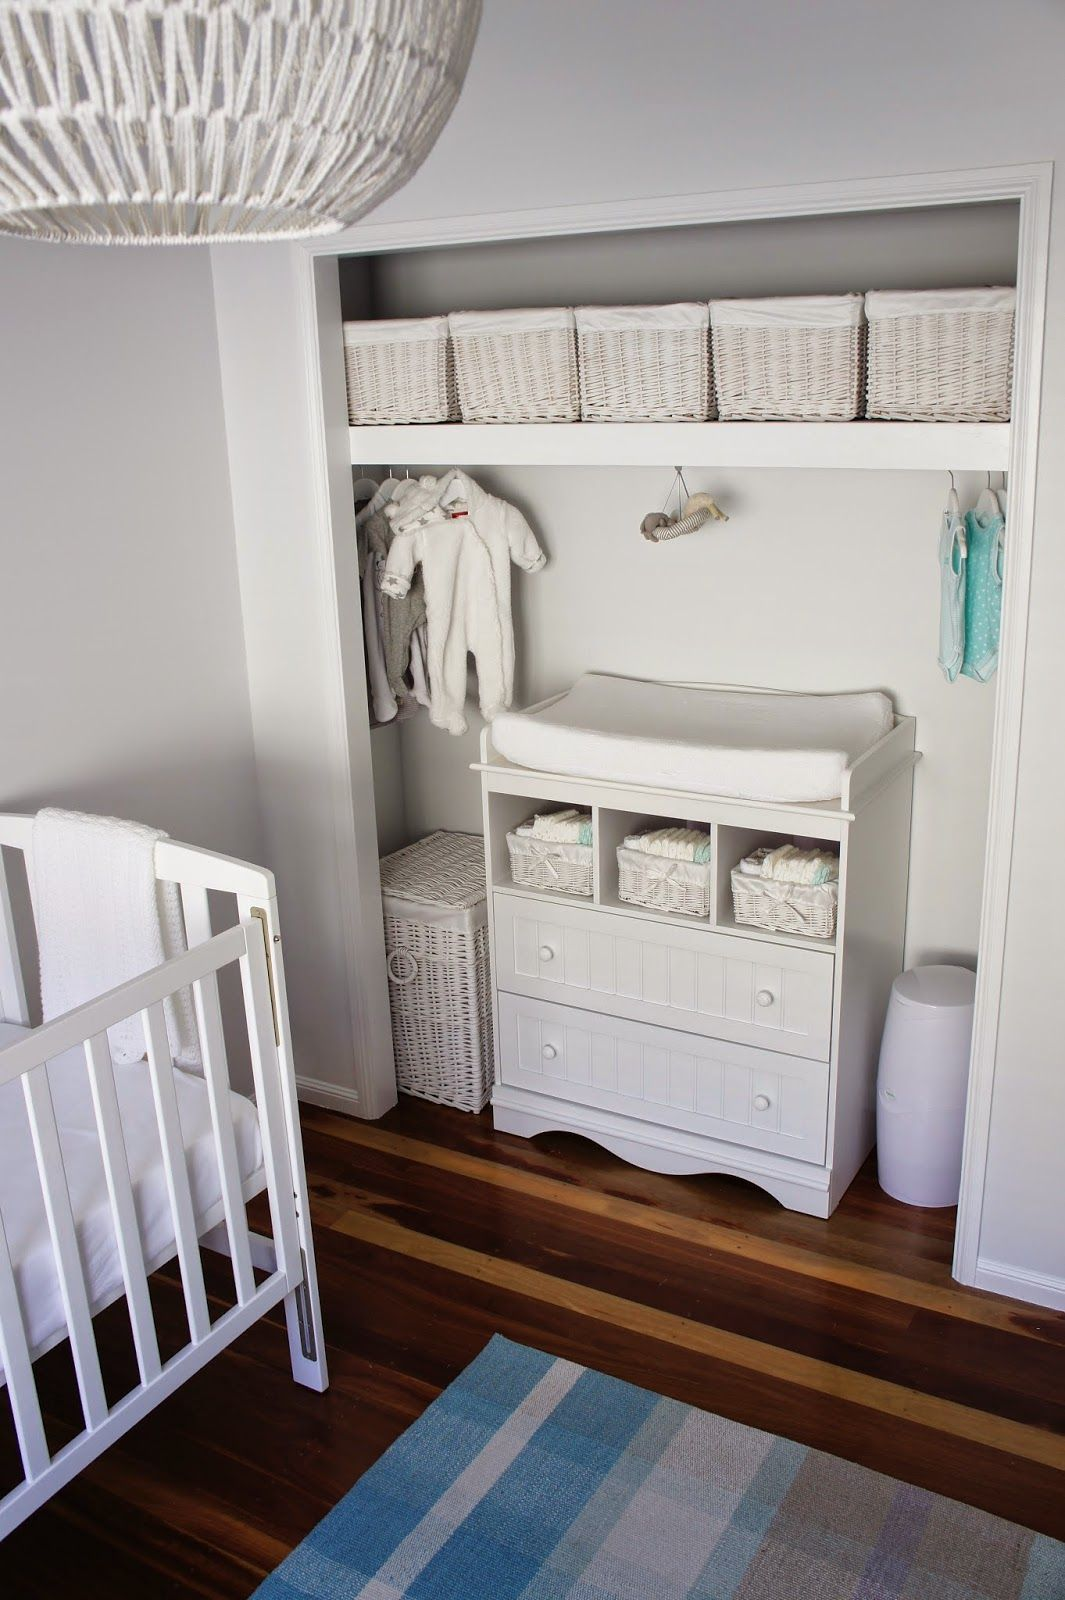 Best Small Nursery Ideas To Make The Space Looks Bigger I 640 x 480